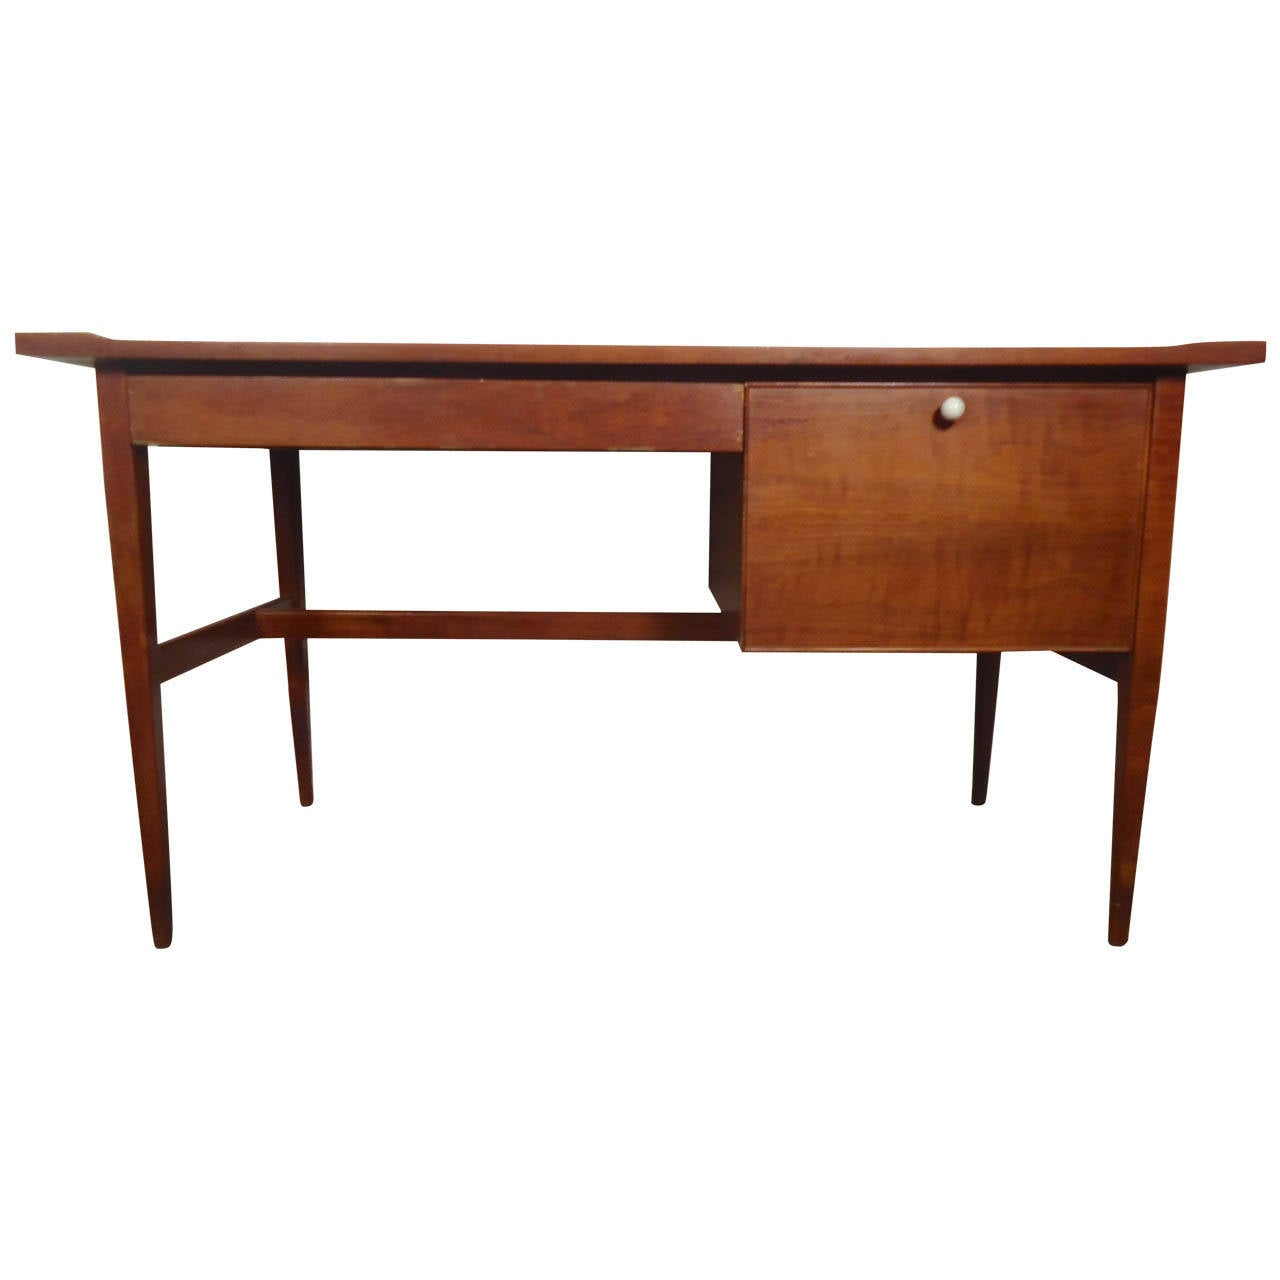 Peaceably Sale At Mid Century Desk Target Mid Century Desk Organizer Drexel Desk Sale Drexel Desk houzz 01 Mid Century Modern Desk